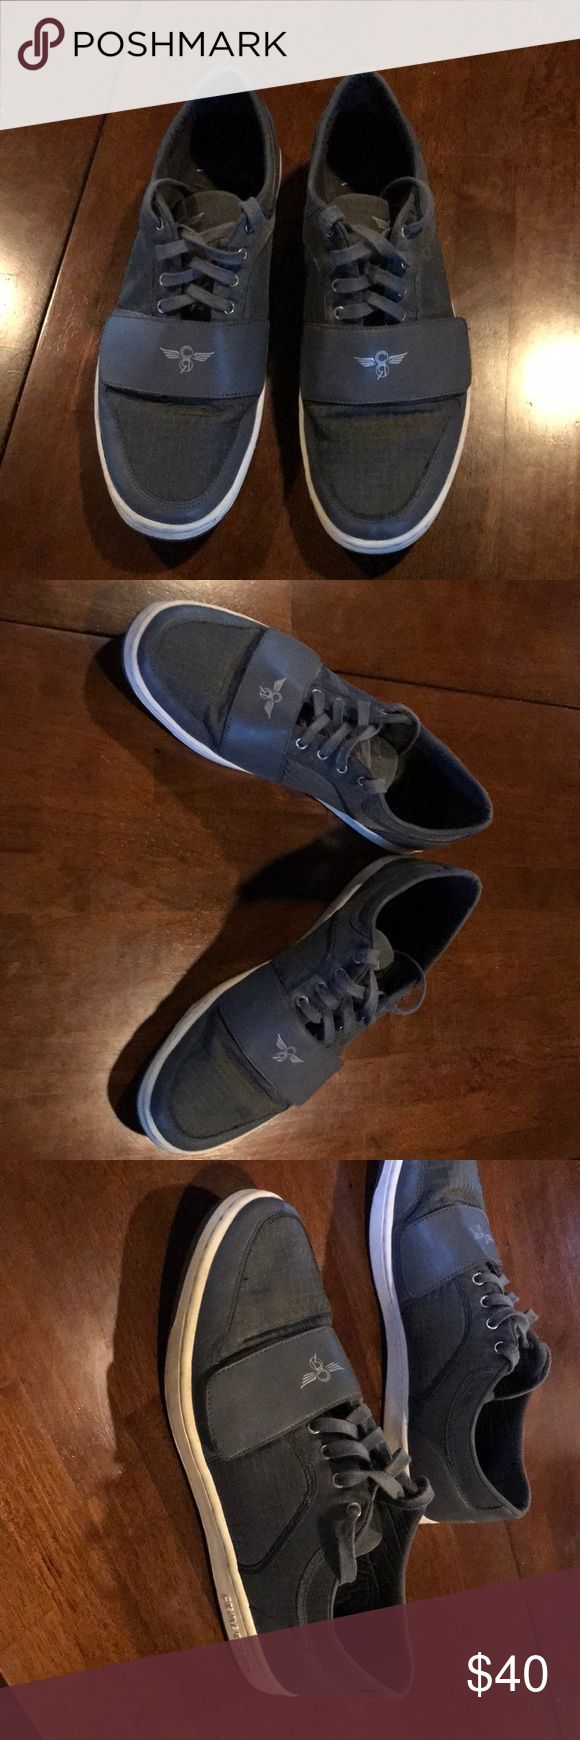 Size 13 men's shoes Size 13 gray and white Creative Recreation Shoes. Worn a bit but still in great shape. Low top comfortable shoe Creative Recreation Shoes Sneakers